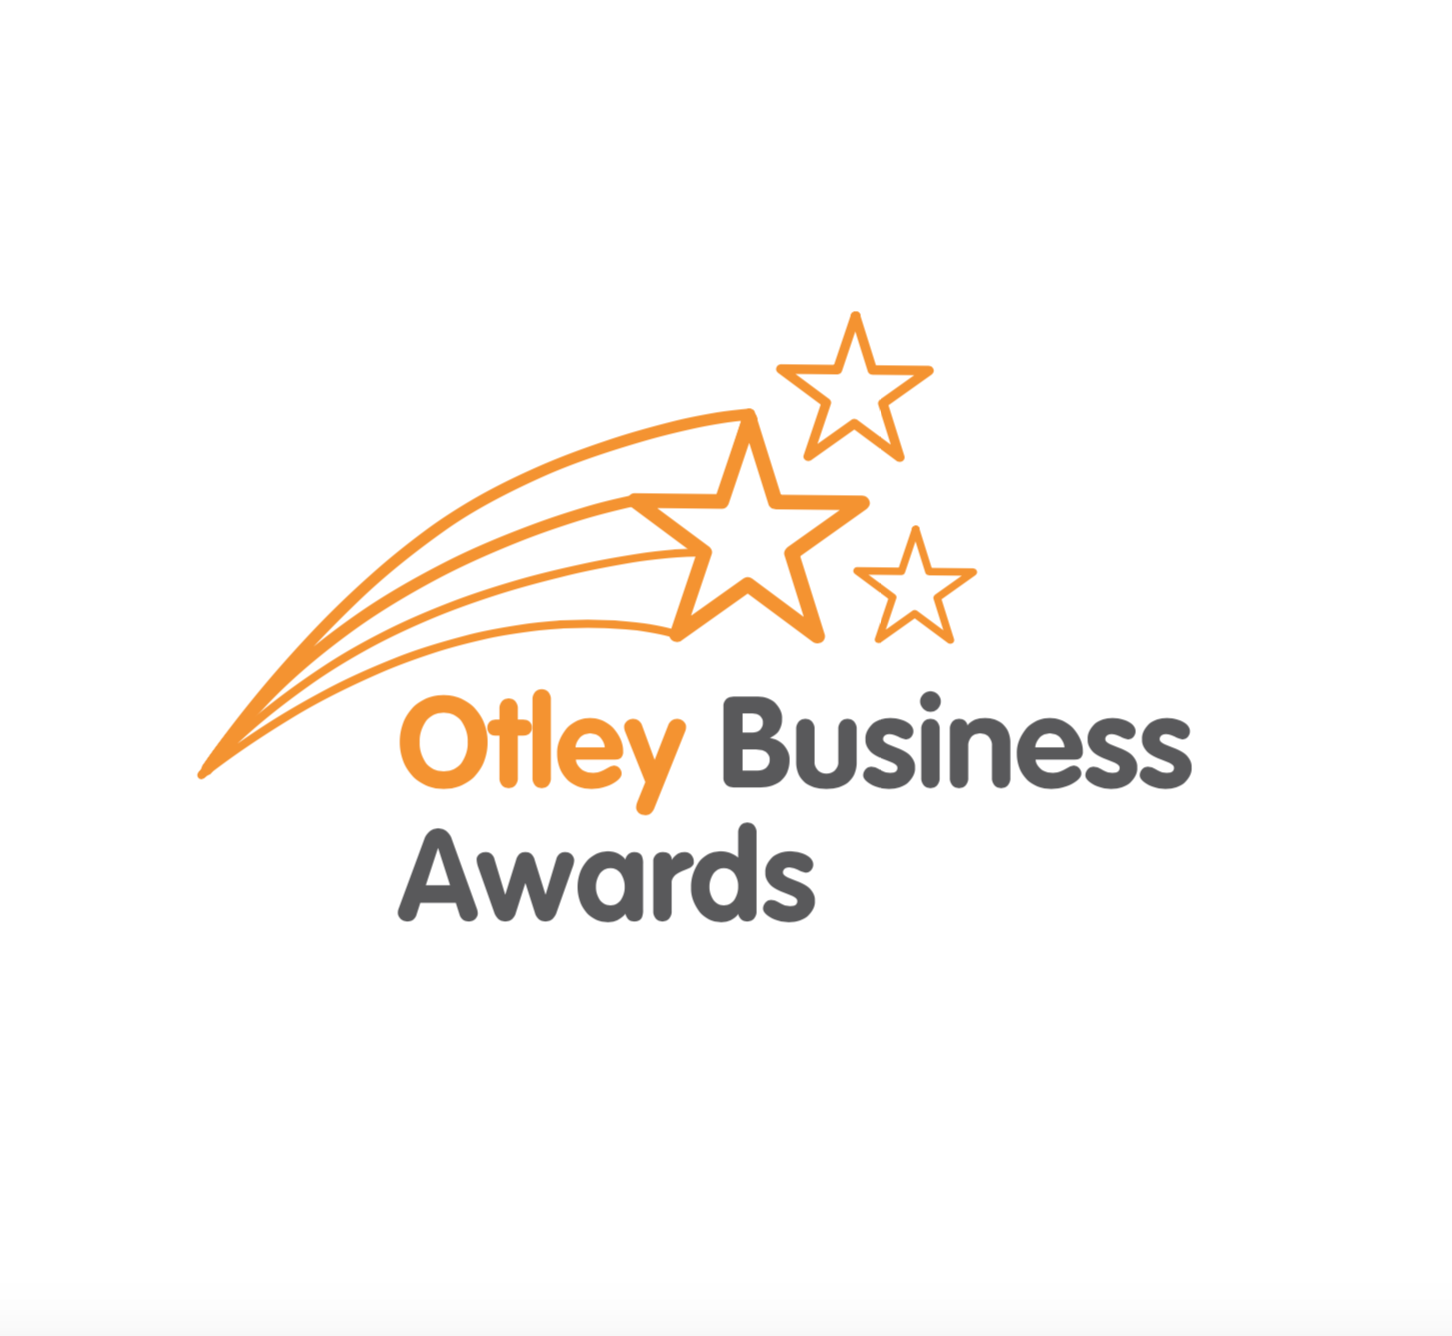 Otley Business Awards